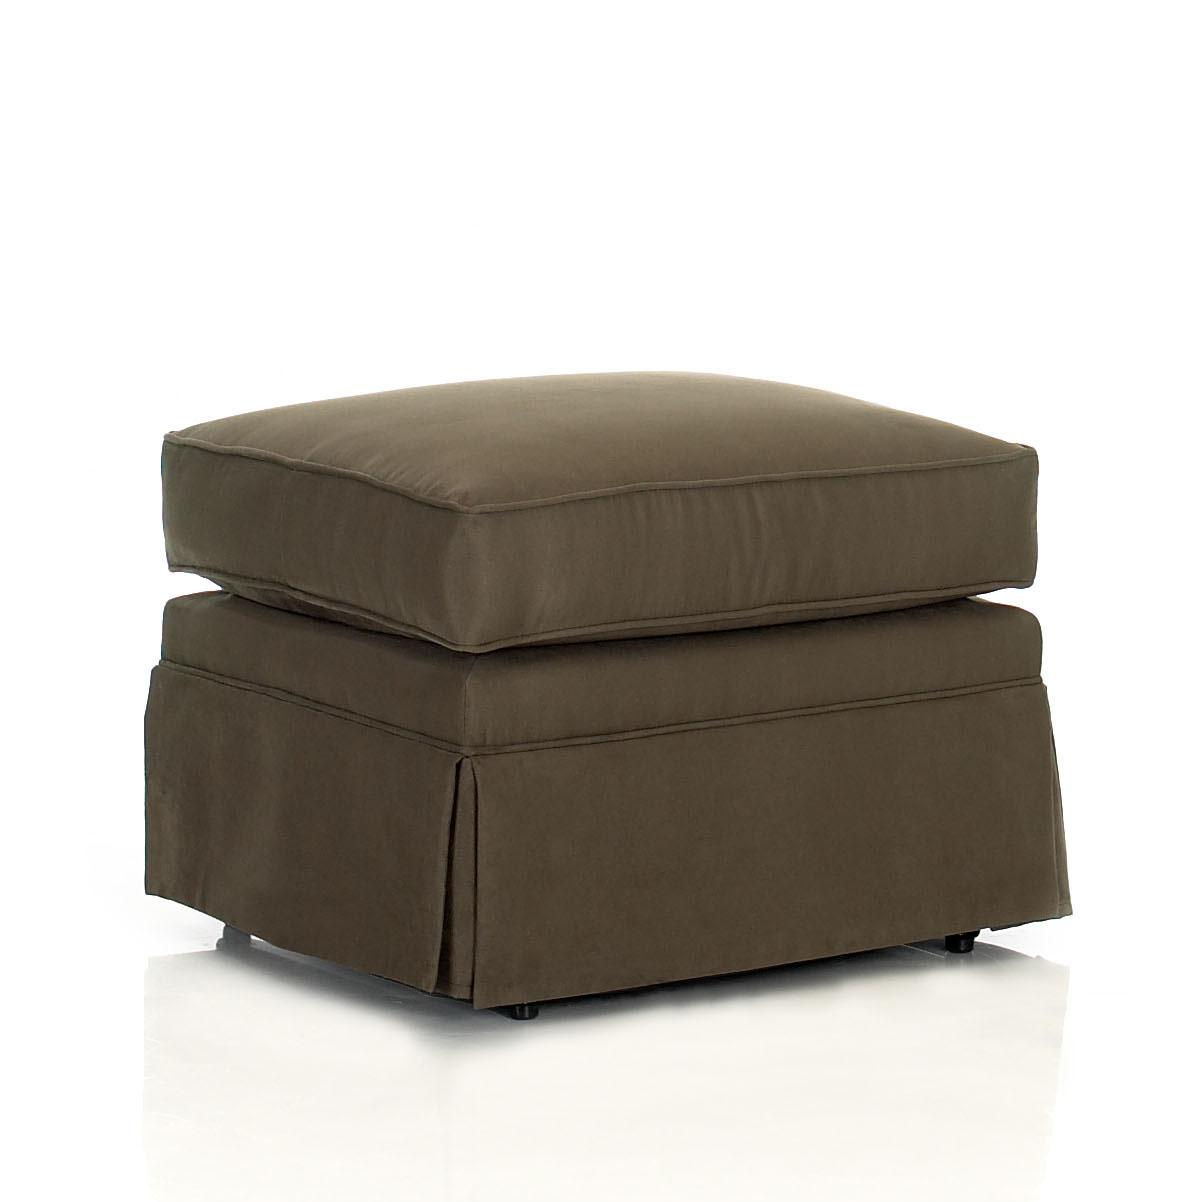 Klaussner Chairs and Accents Carolina Ottoman - Item Number: 750-OTTO